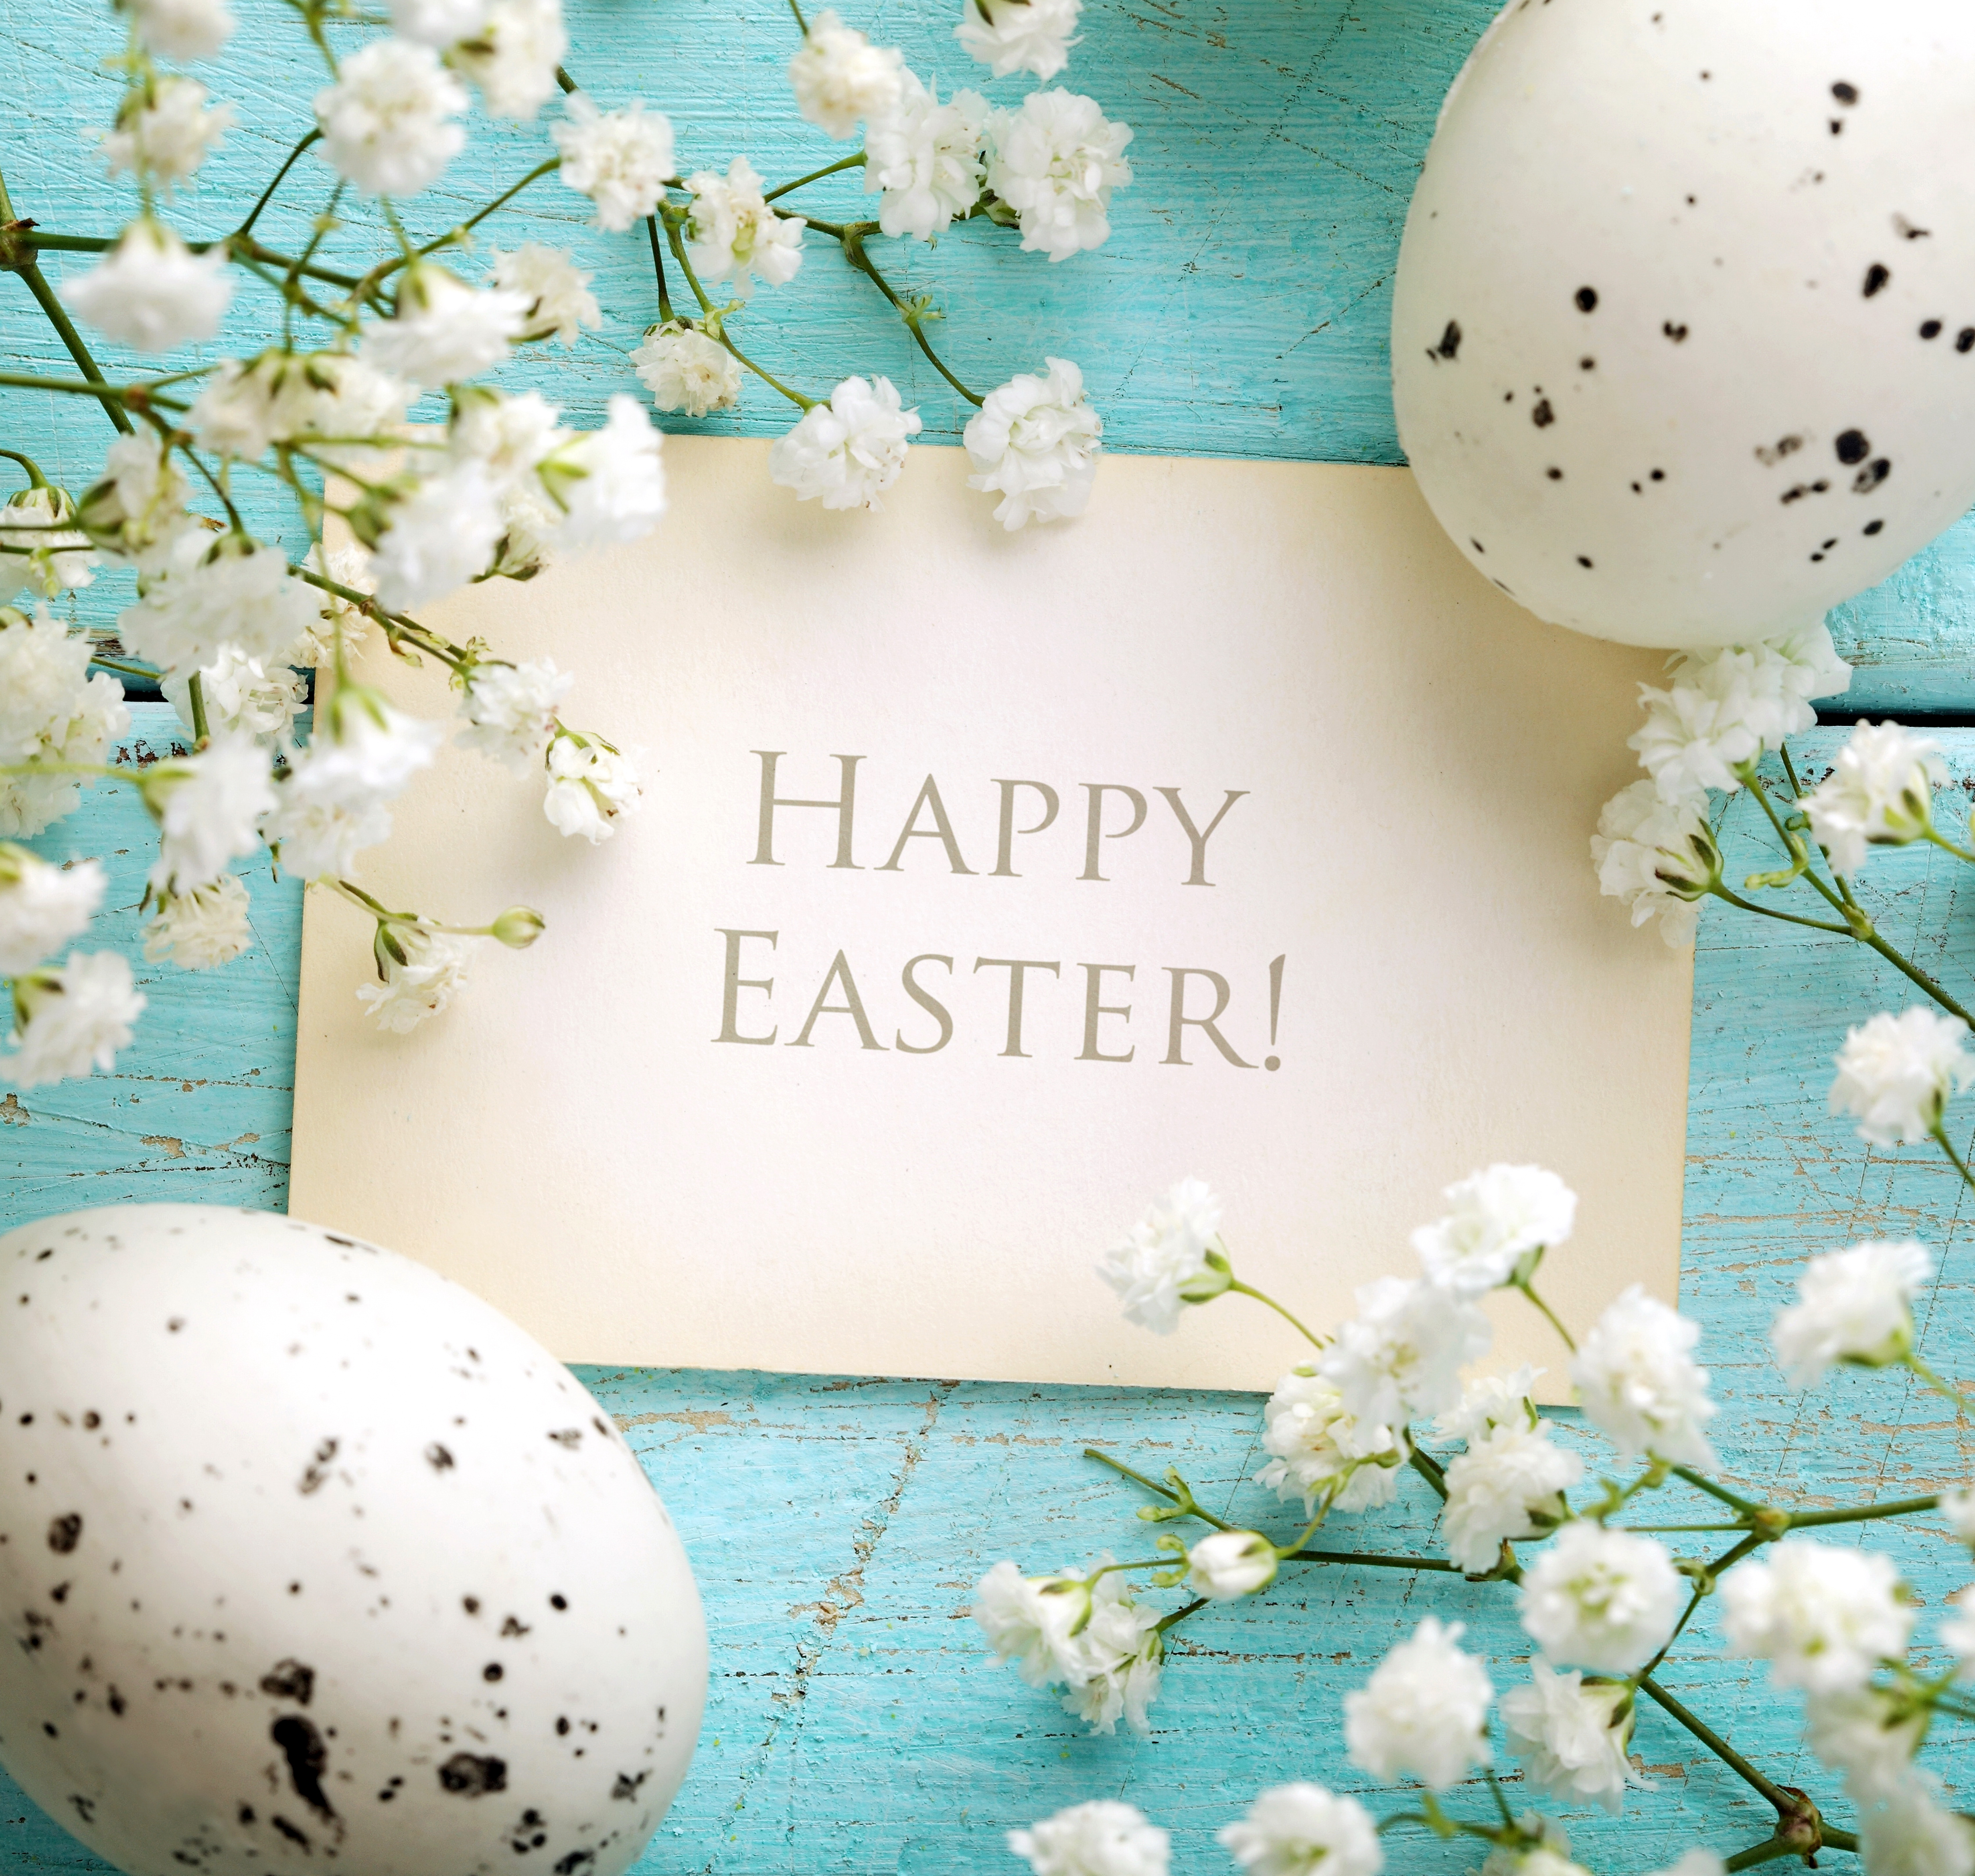 Happy Easter Images For Desktop Wallpapers Backgrounds Images 6000x5700